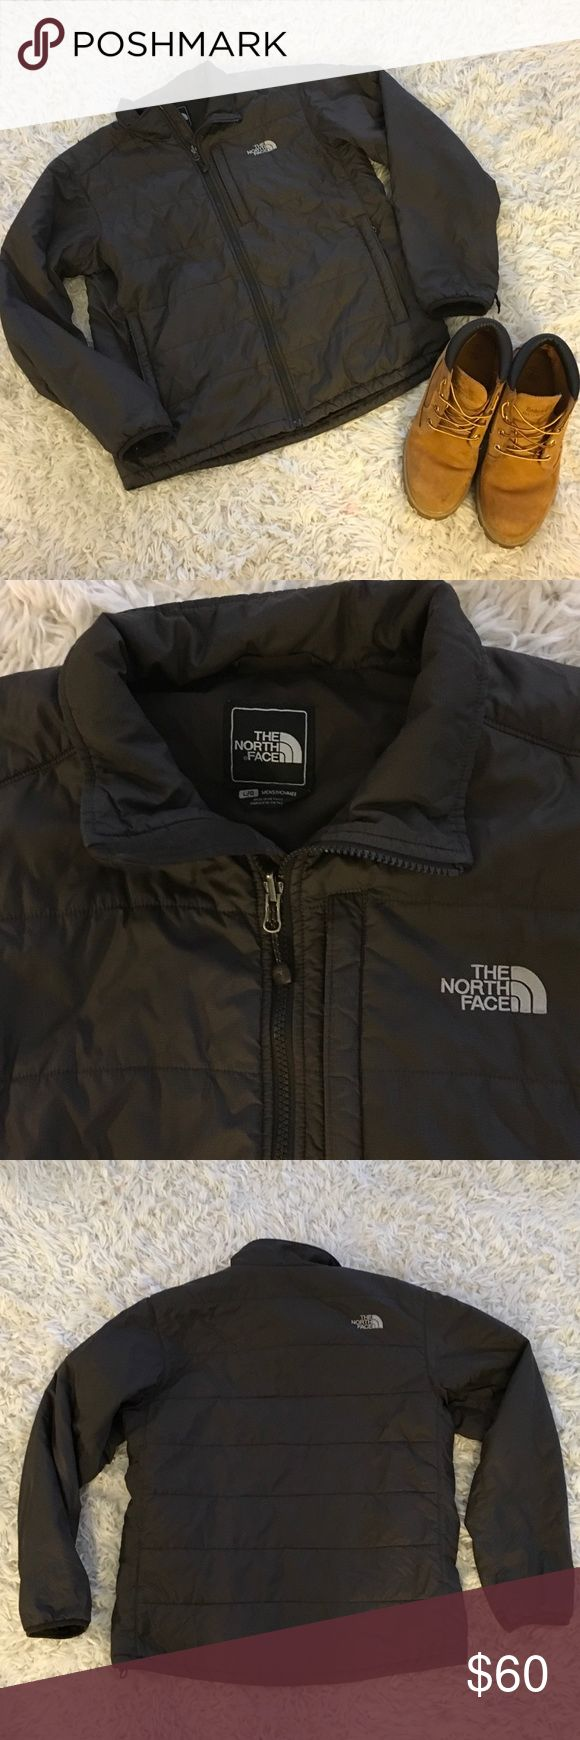 The North Face Puffer Coat This North Face Men's Puffer, Primaloft Coat is in excellent condition!  It is perfect for outerwear or layering. It is a dark brown color making it very neutral.  It does have a very small tear on the top,  back corner (see photo). The North Face Jackets & Coats Puffers